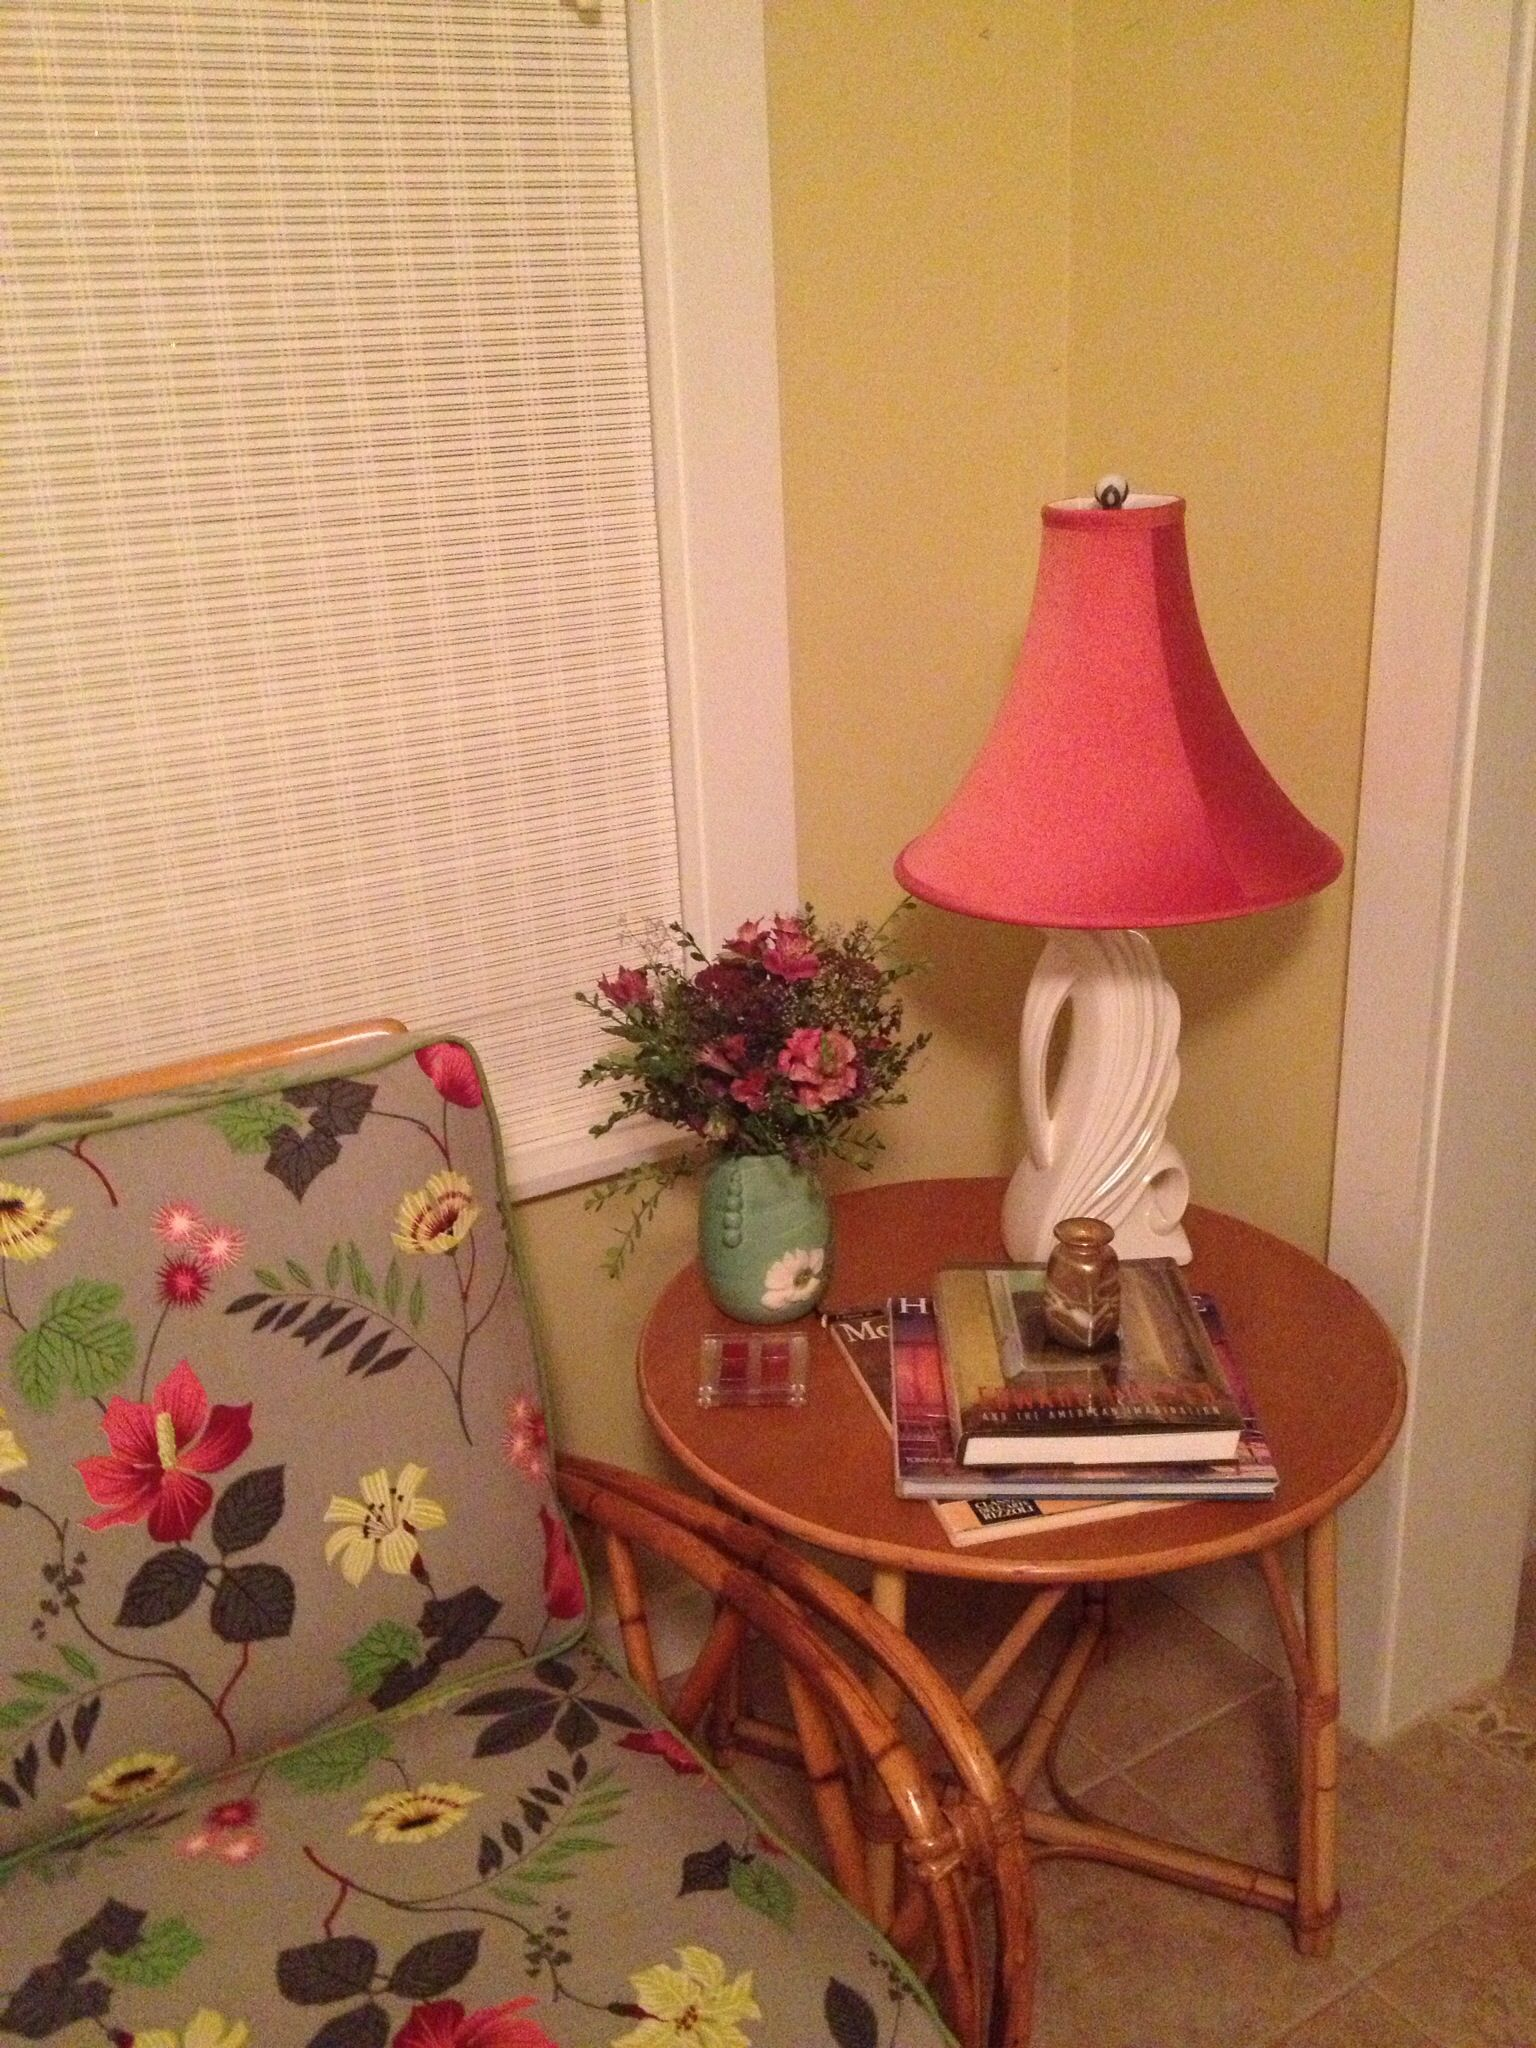 Heywood-Wakefield rattan side table with Weller vase & vintage lamp from Millie's Antiques. Vignette in the sunroom.